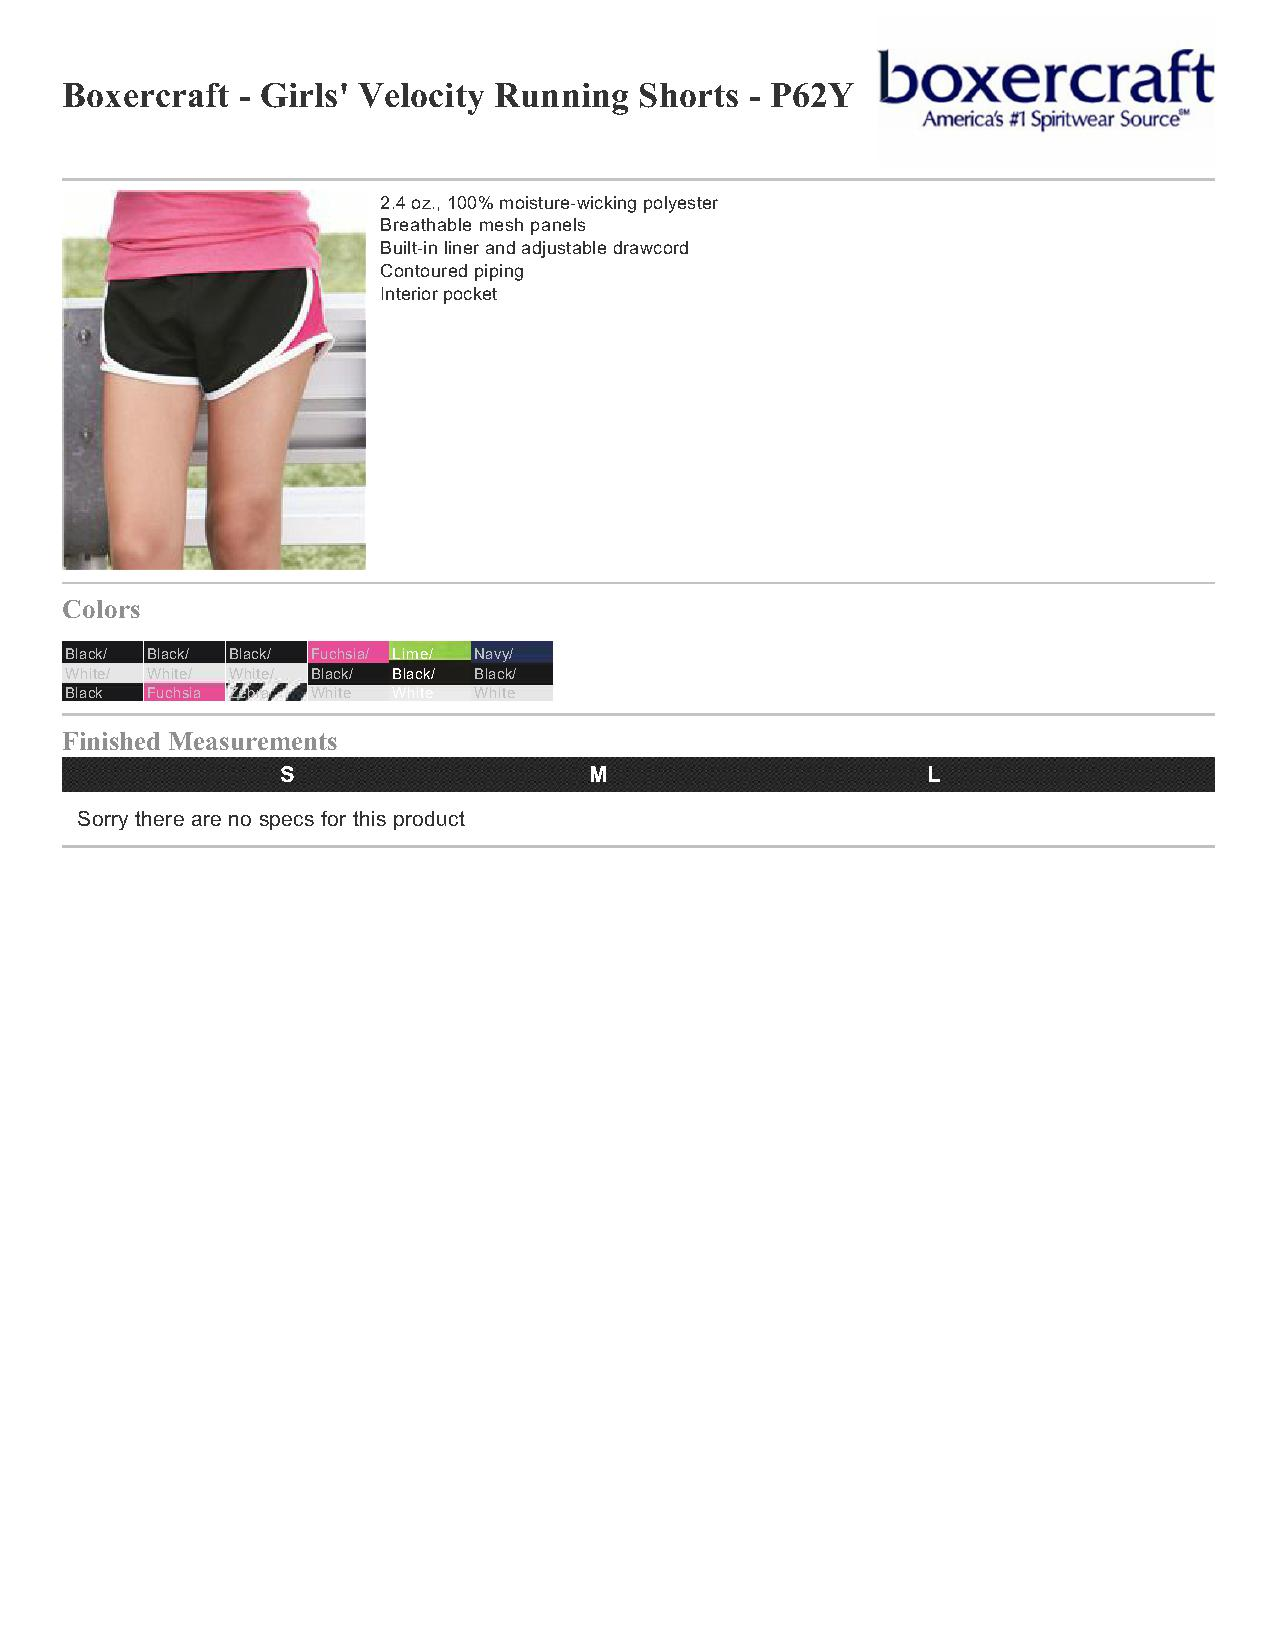 d0f39072e23 Boxercraft Girls  Velocity Running Shorts - P62Y  11.00 - Women s Shorts